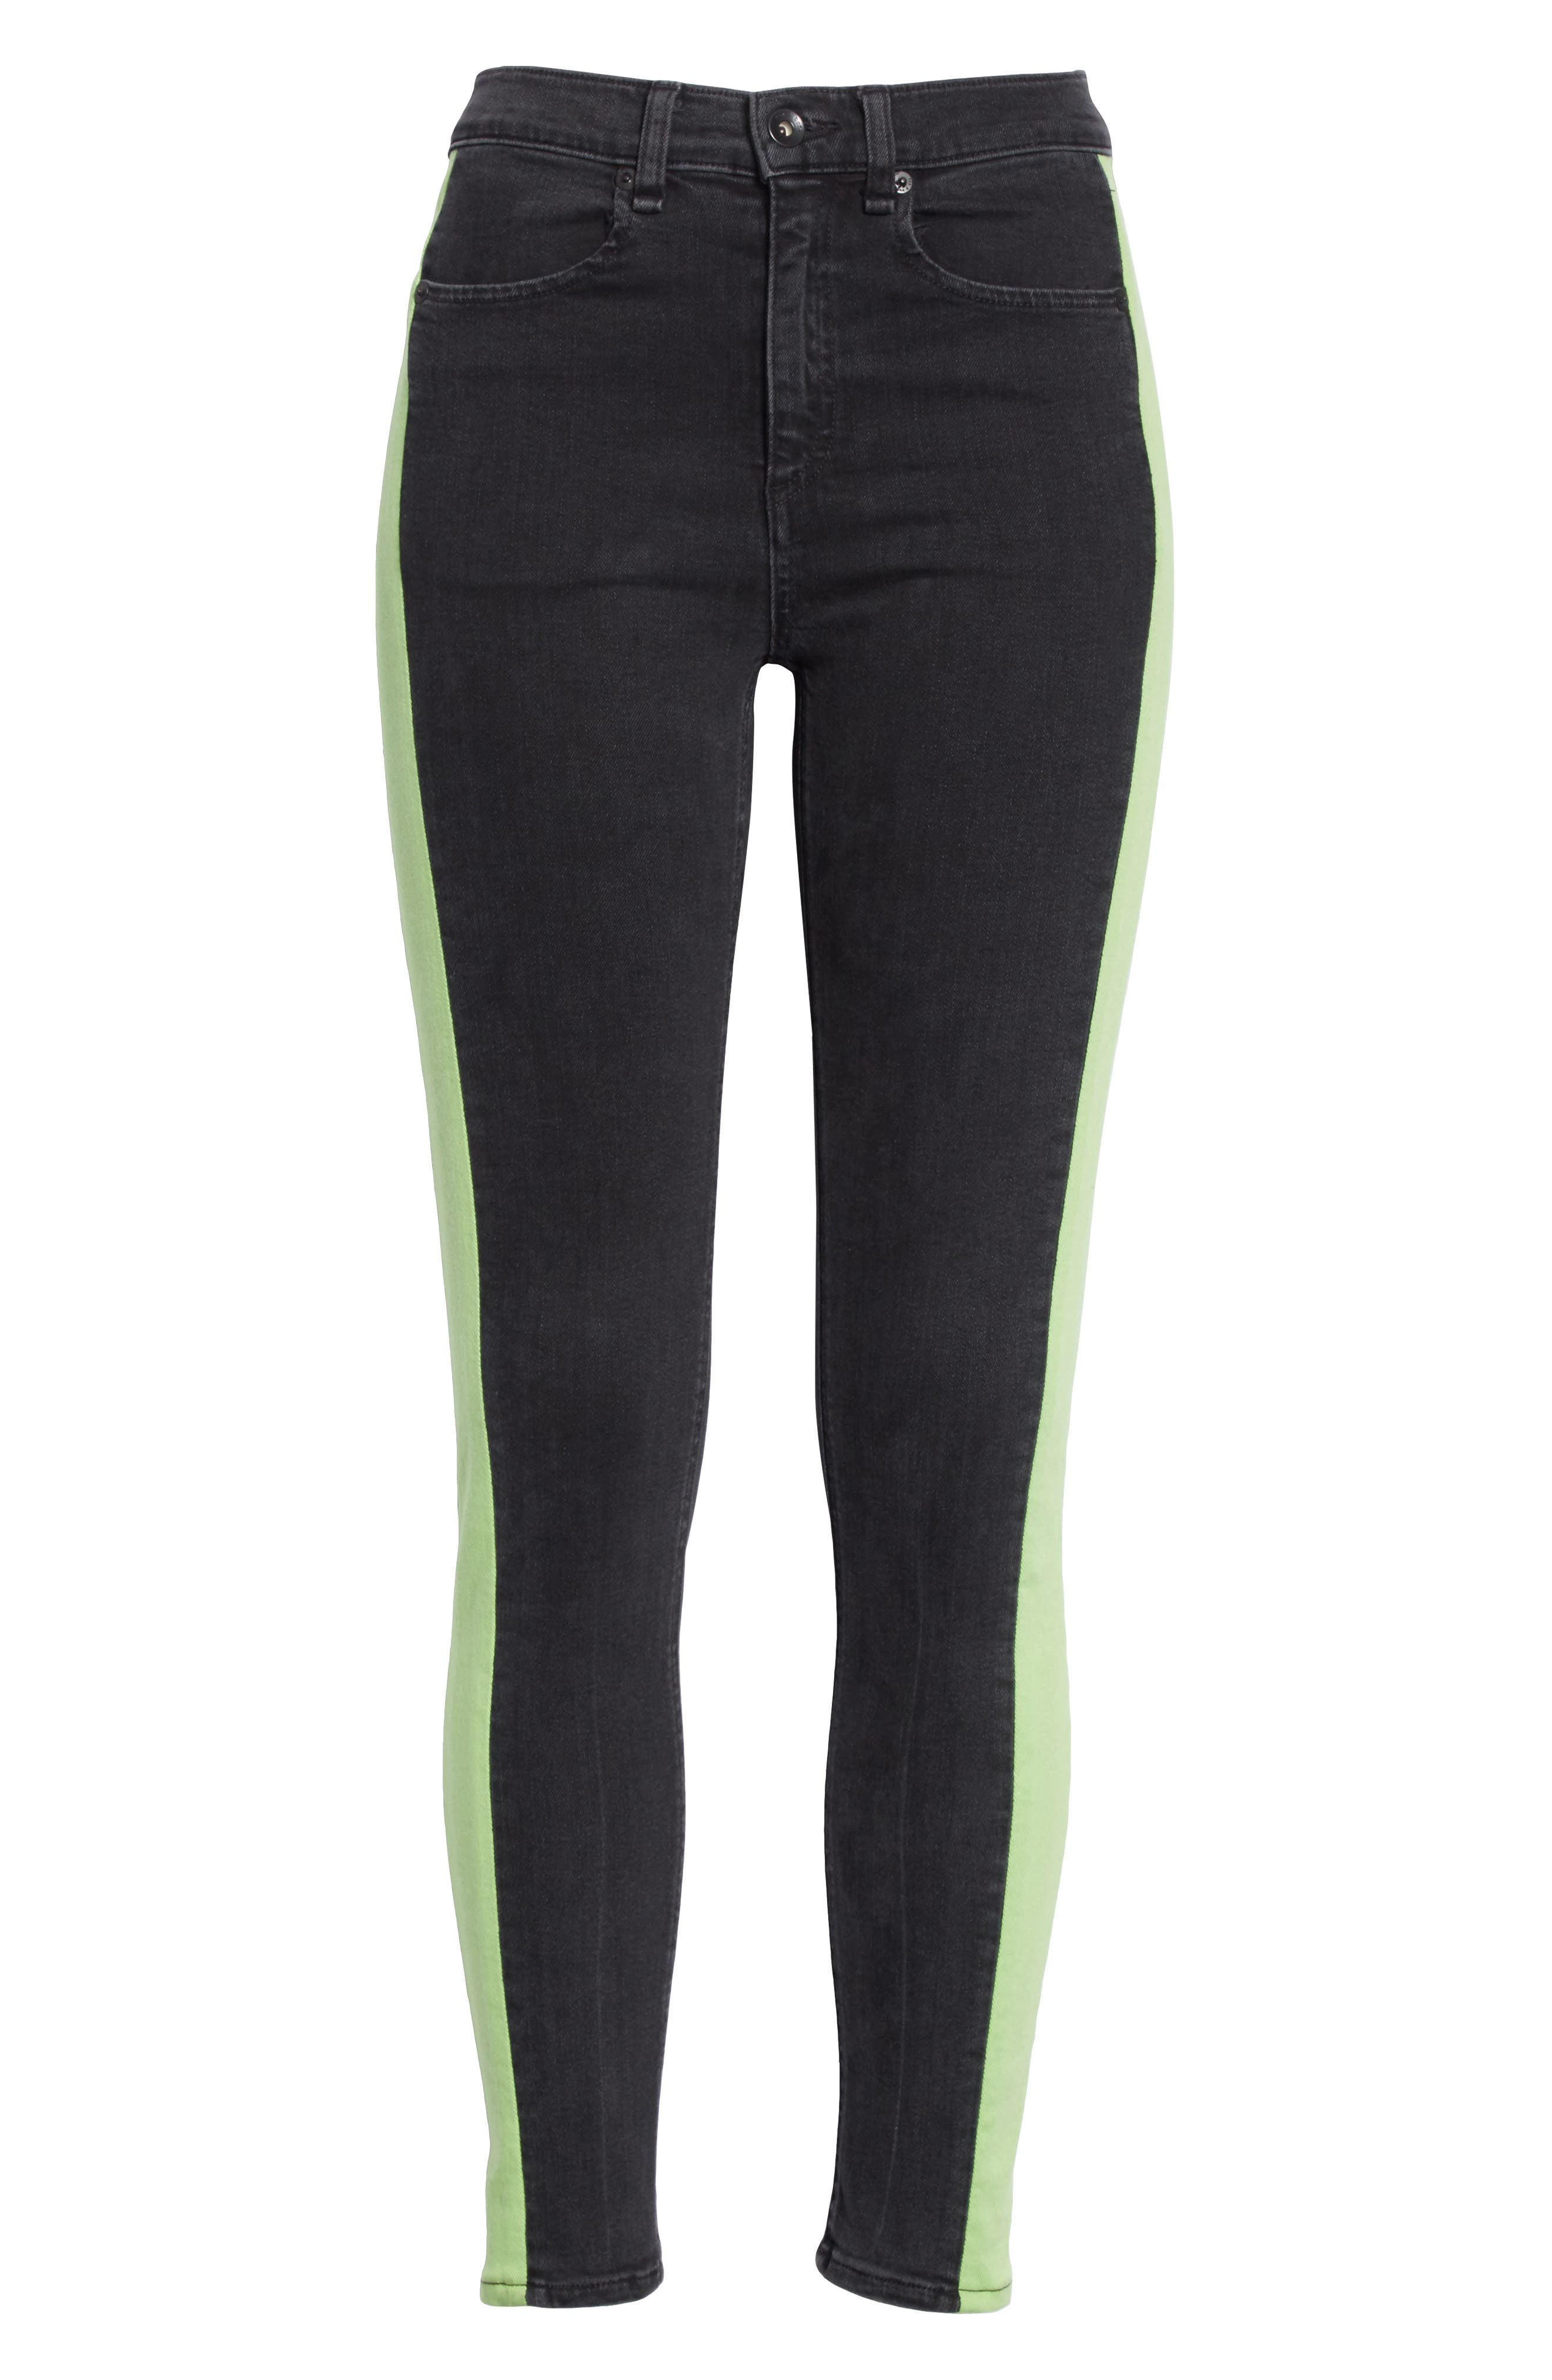 JEAN Mazie High Waist Skinny Jeans,                             Alternate thumbnail 6, color,                             001